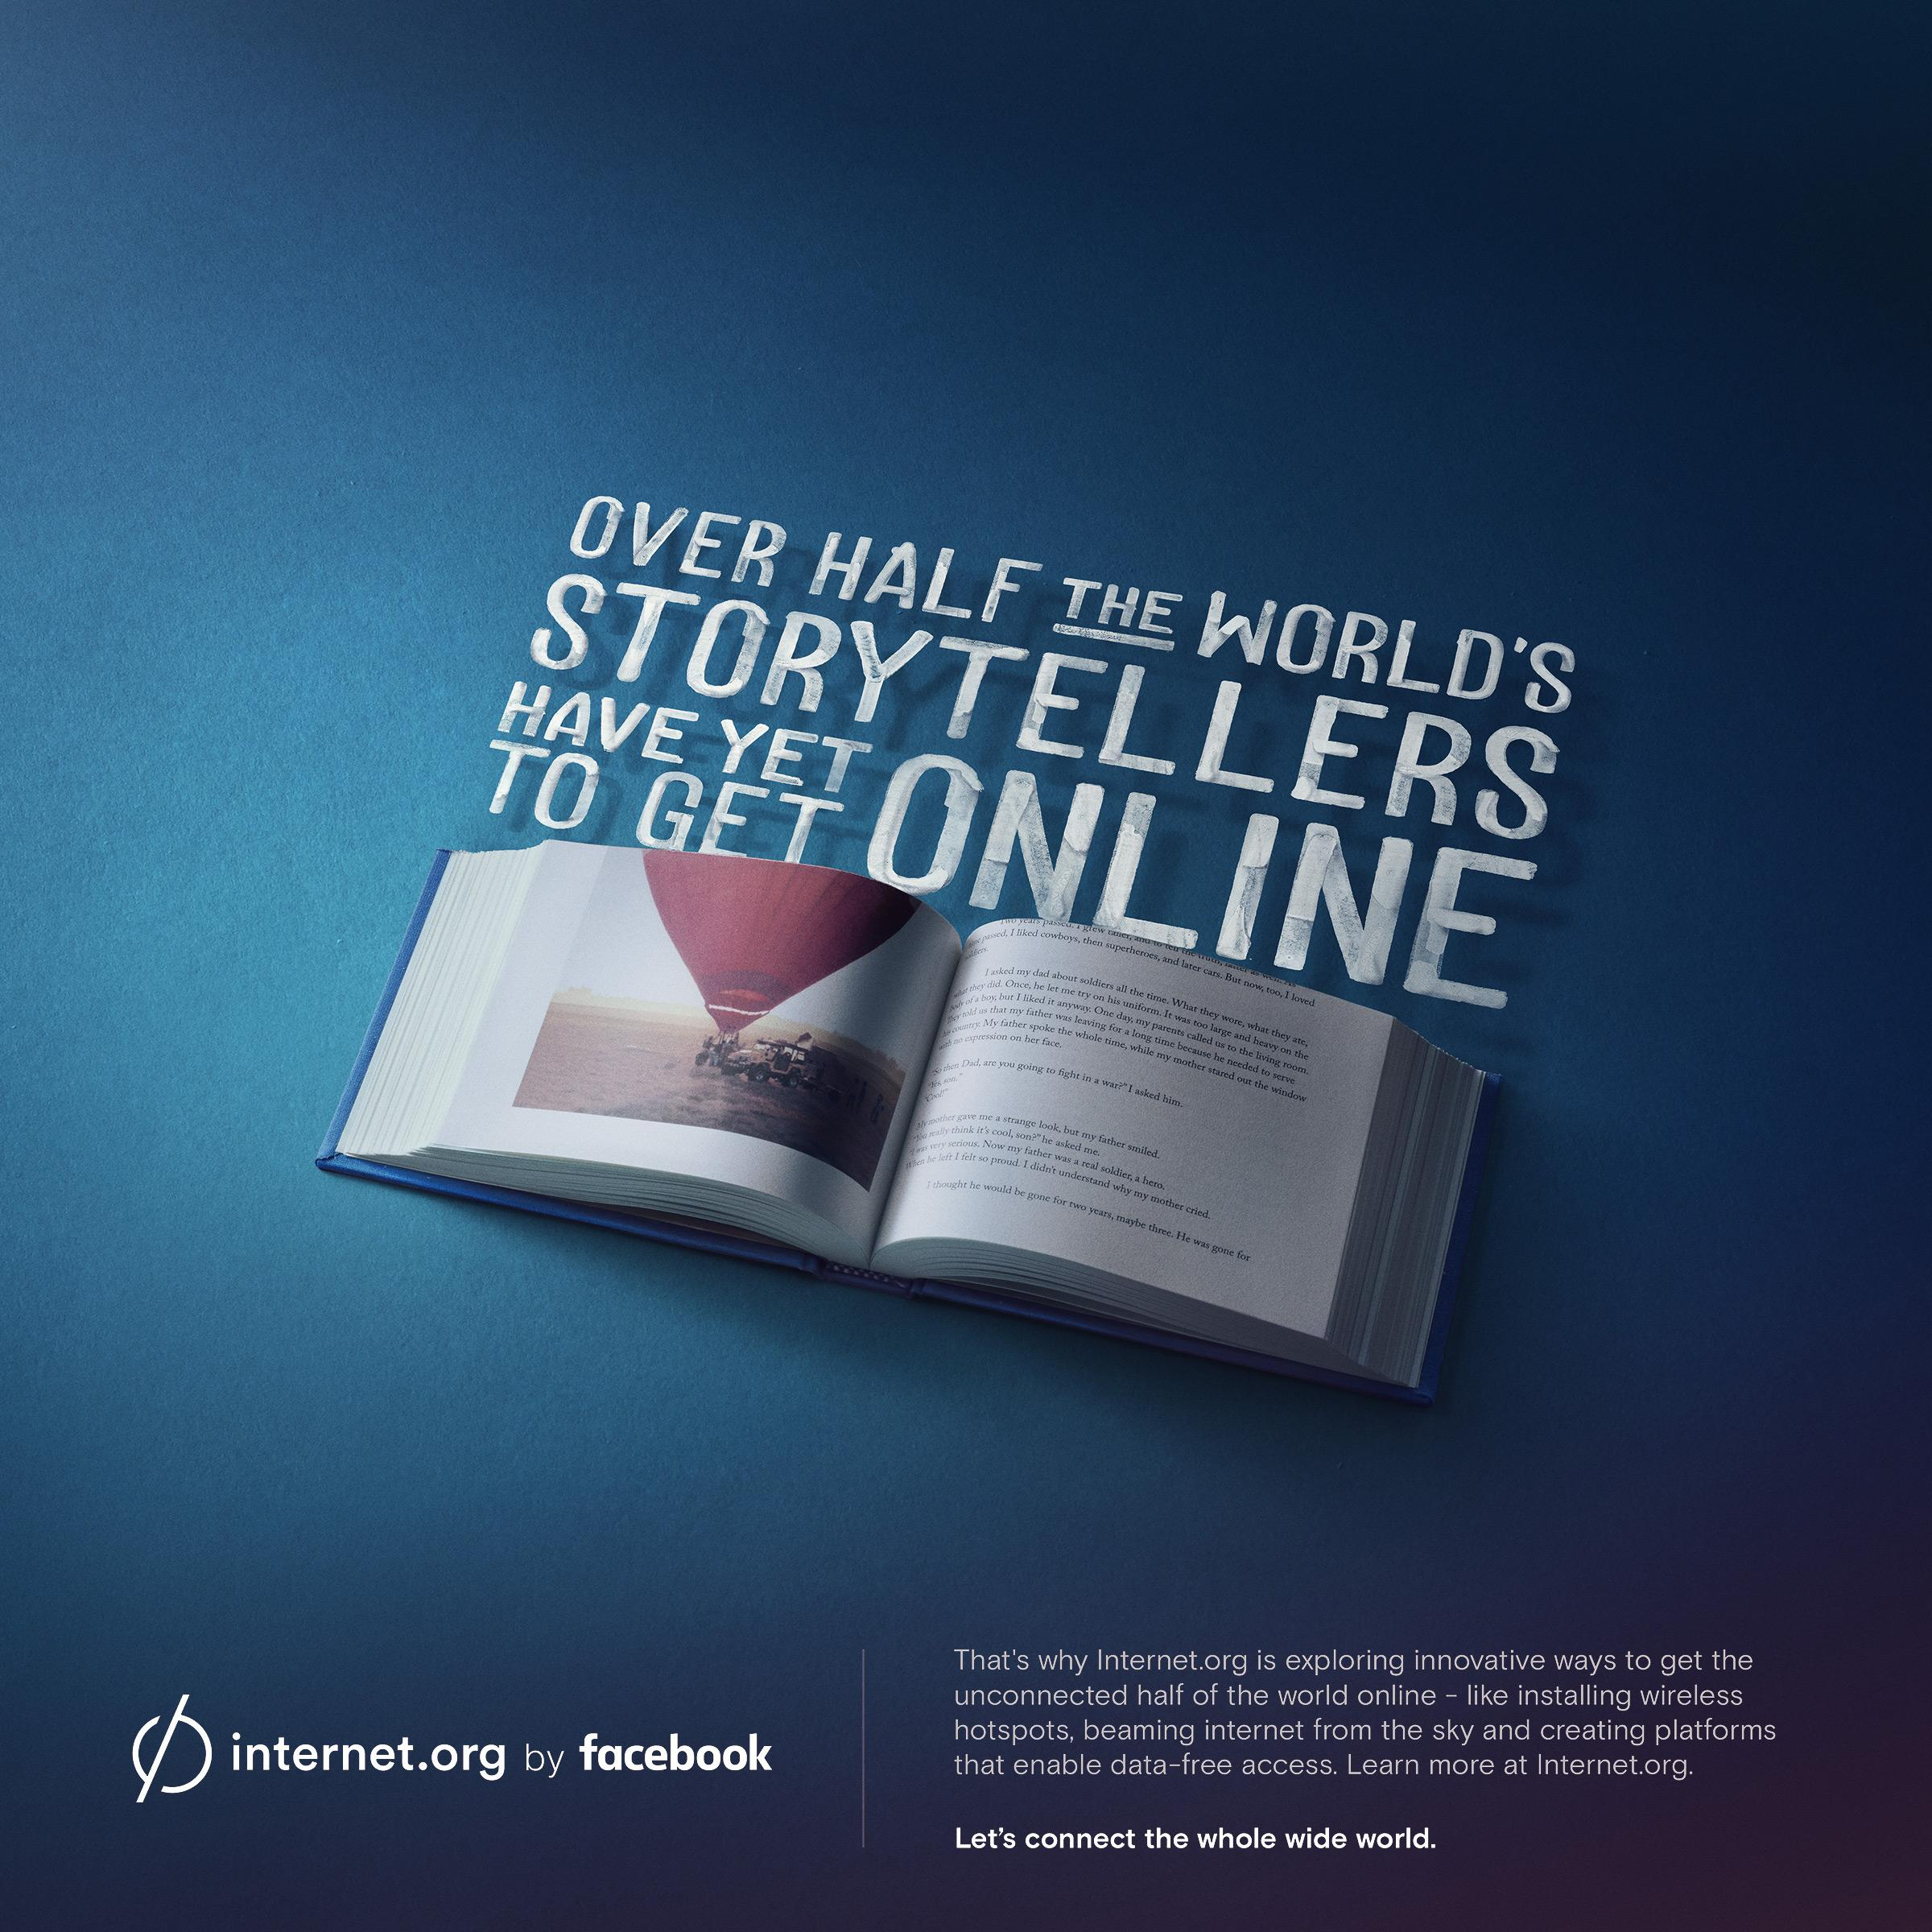 Facebook: internet.org - Storytellers